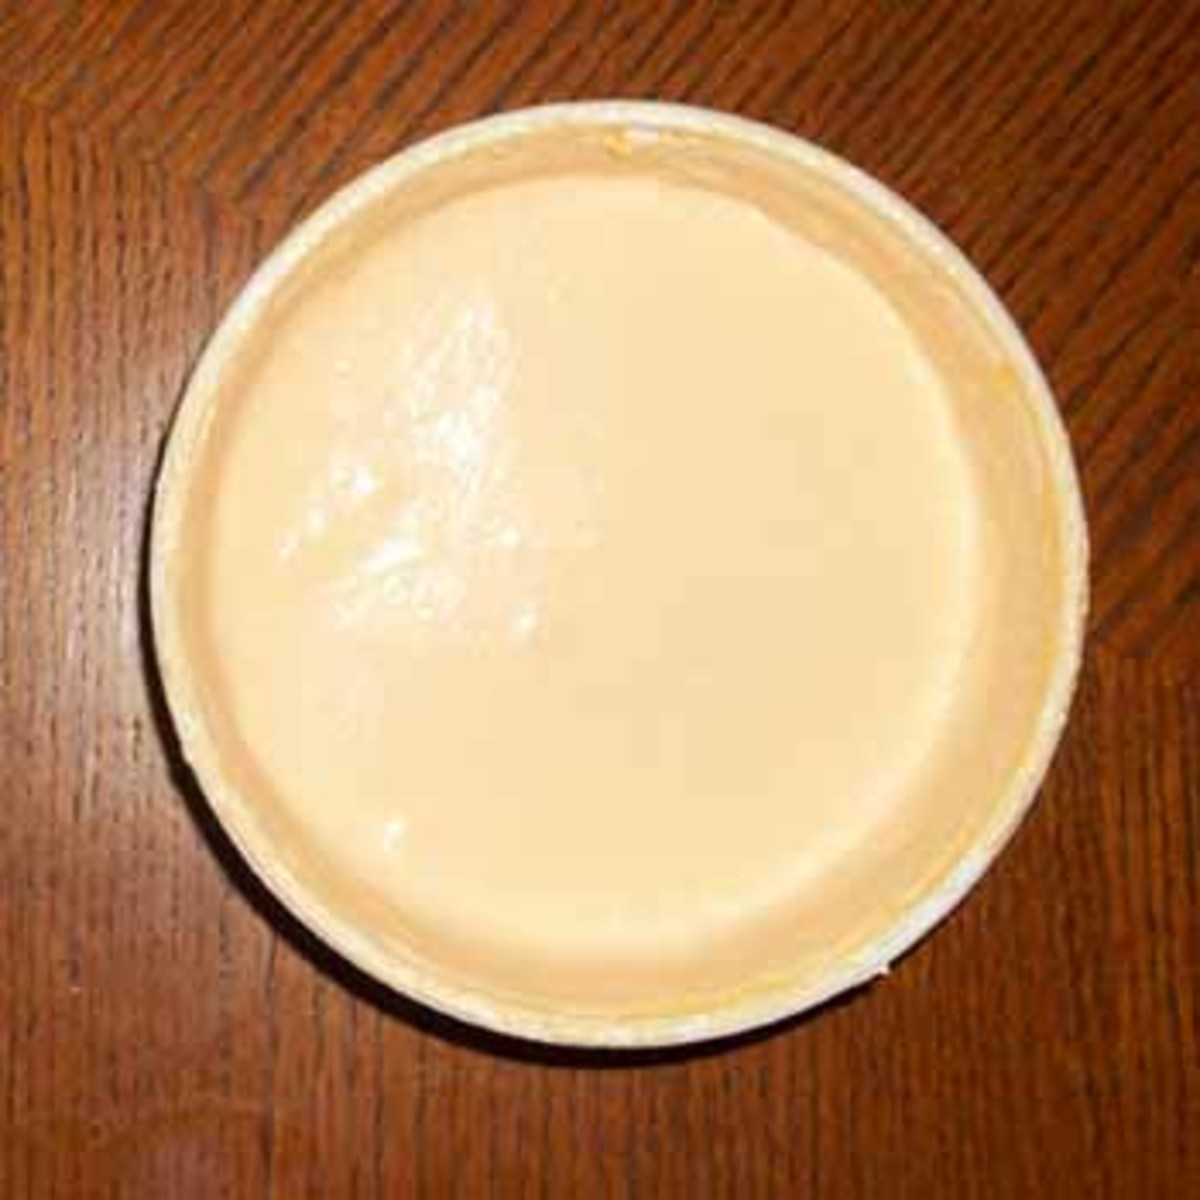 Frosting made with whipped topping and instant pudding